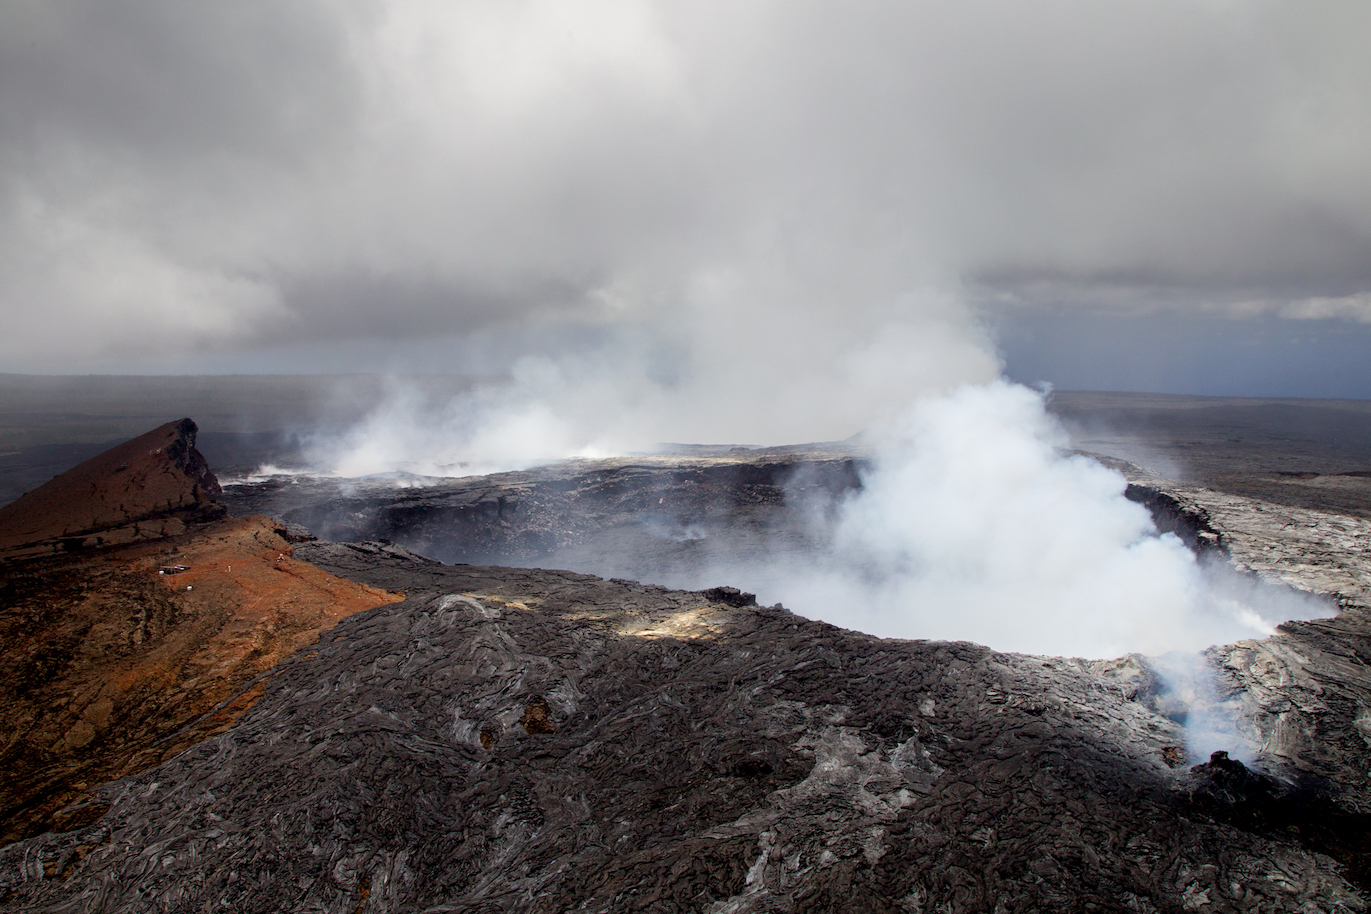 Residents have been warned of yet another hazard from Kilauea's eruptions. Vog is another harmful mixture of gases and vapors that form a heavy volcanic smog.